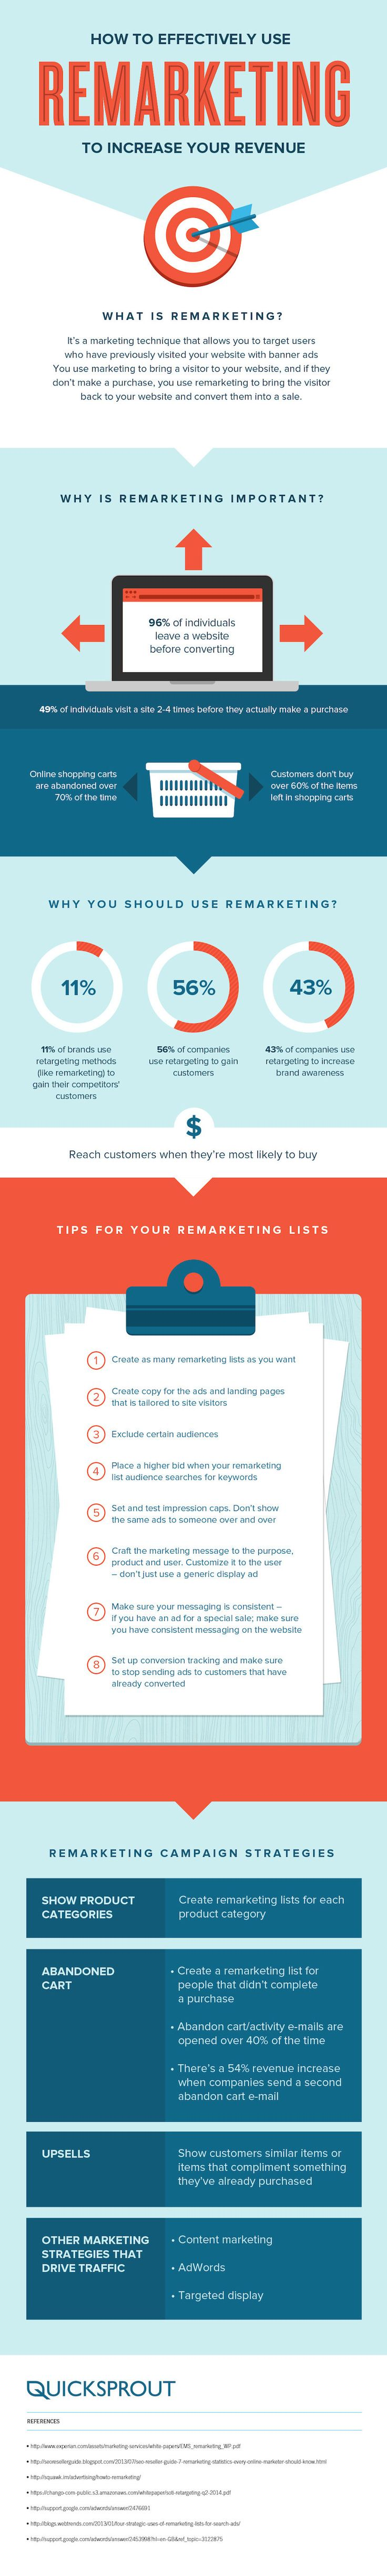 How to Effectively Use Remarketing to Increase Your Revenue - #infographic #advertising #marketing